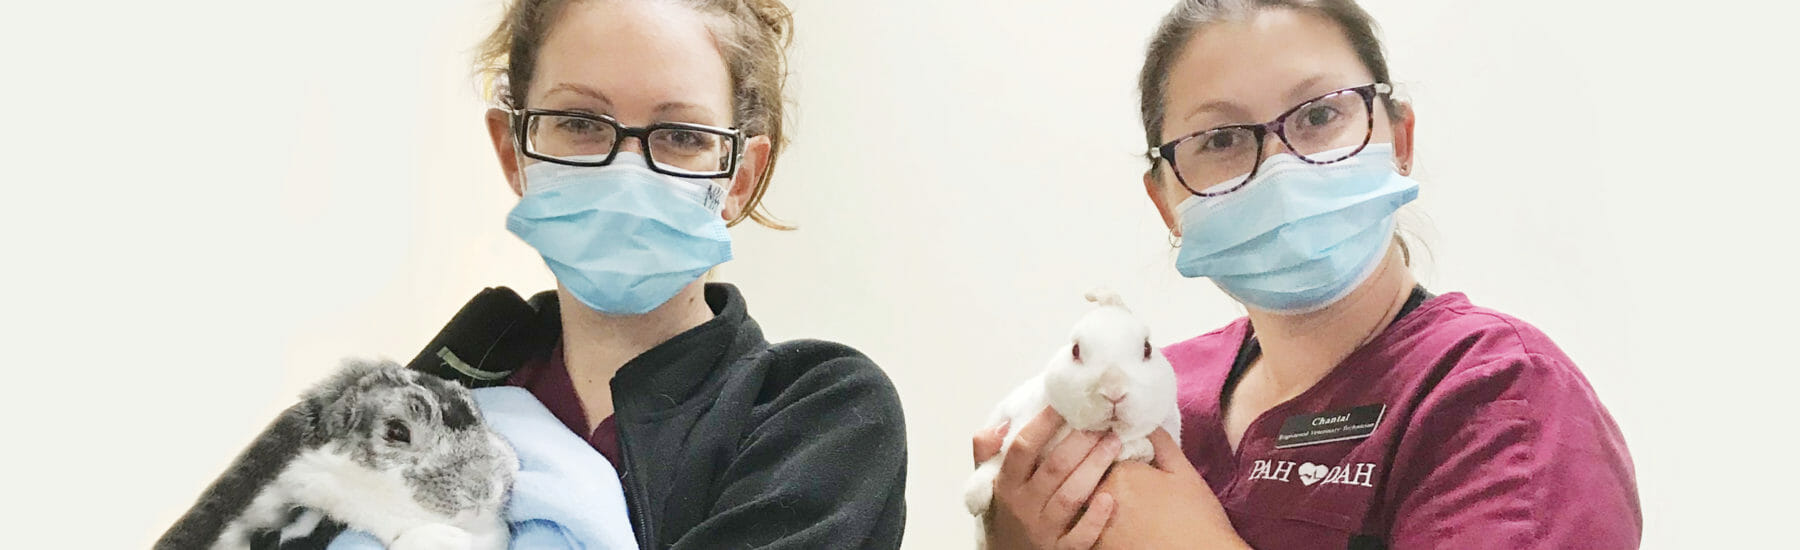 Two veterinary employees holding rabbits